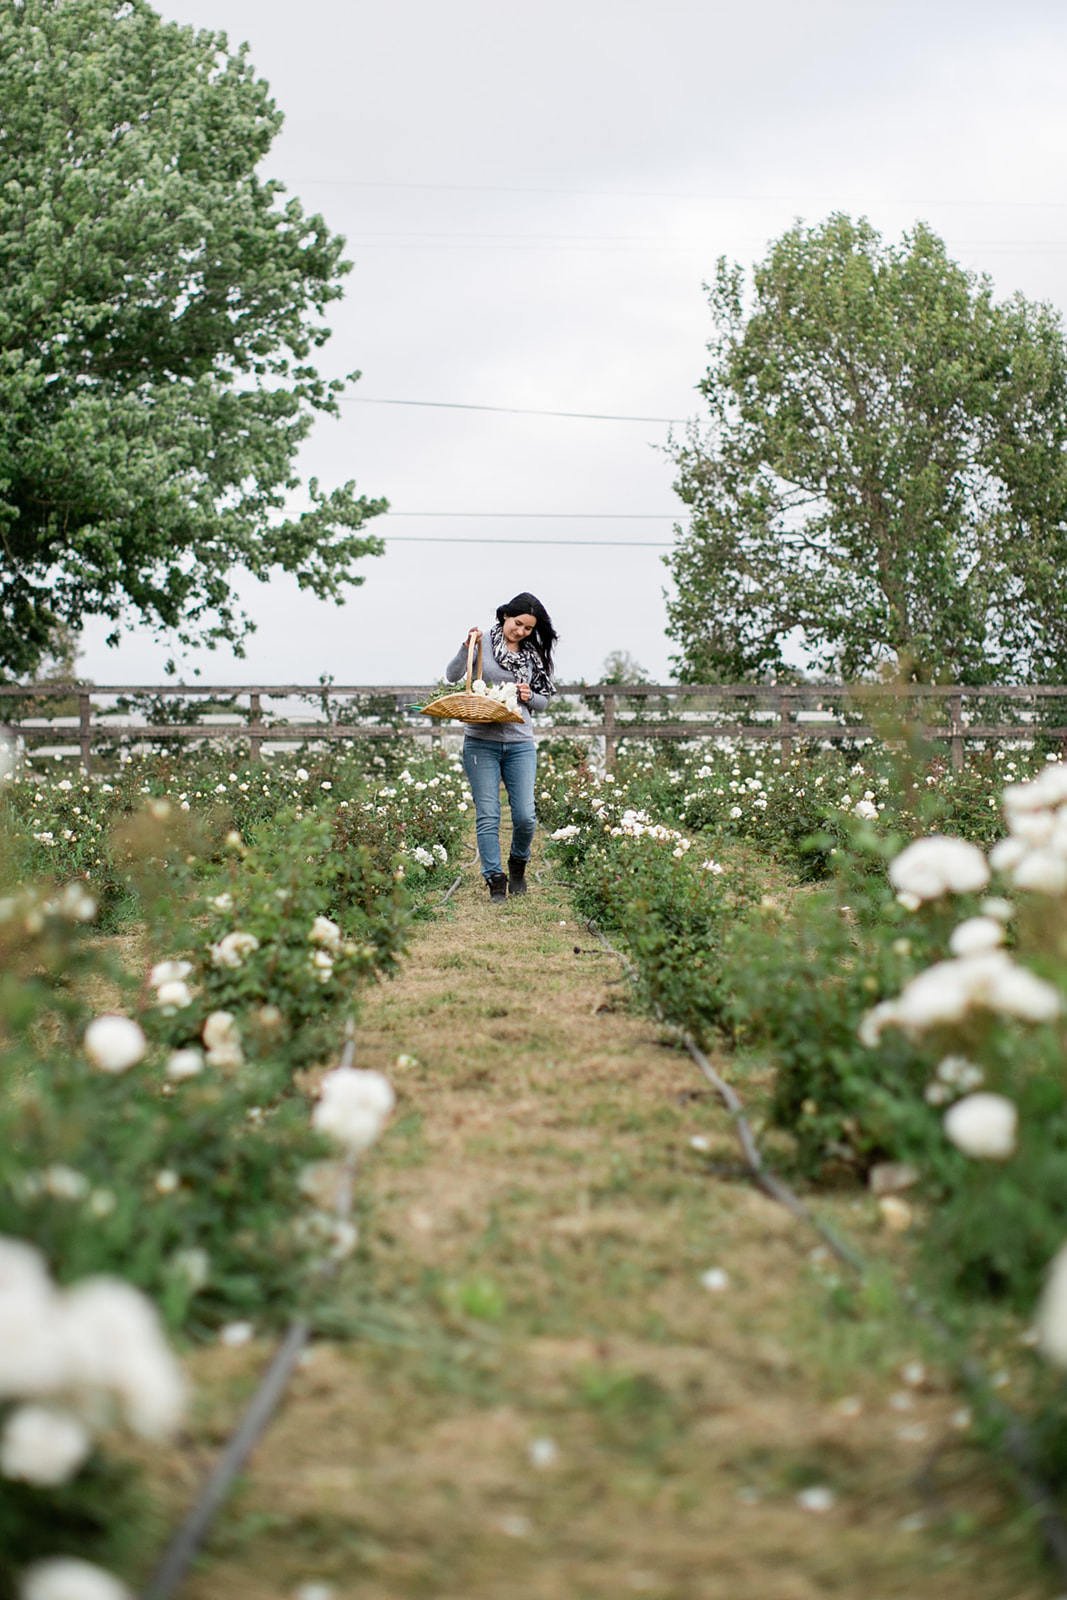 Dreamy_Flower_Farm_San_Ynez_California_Maria_Maxit.jpg